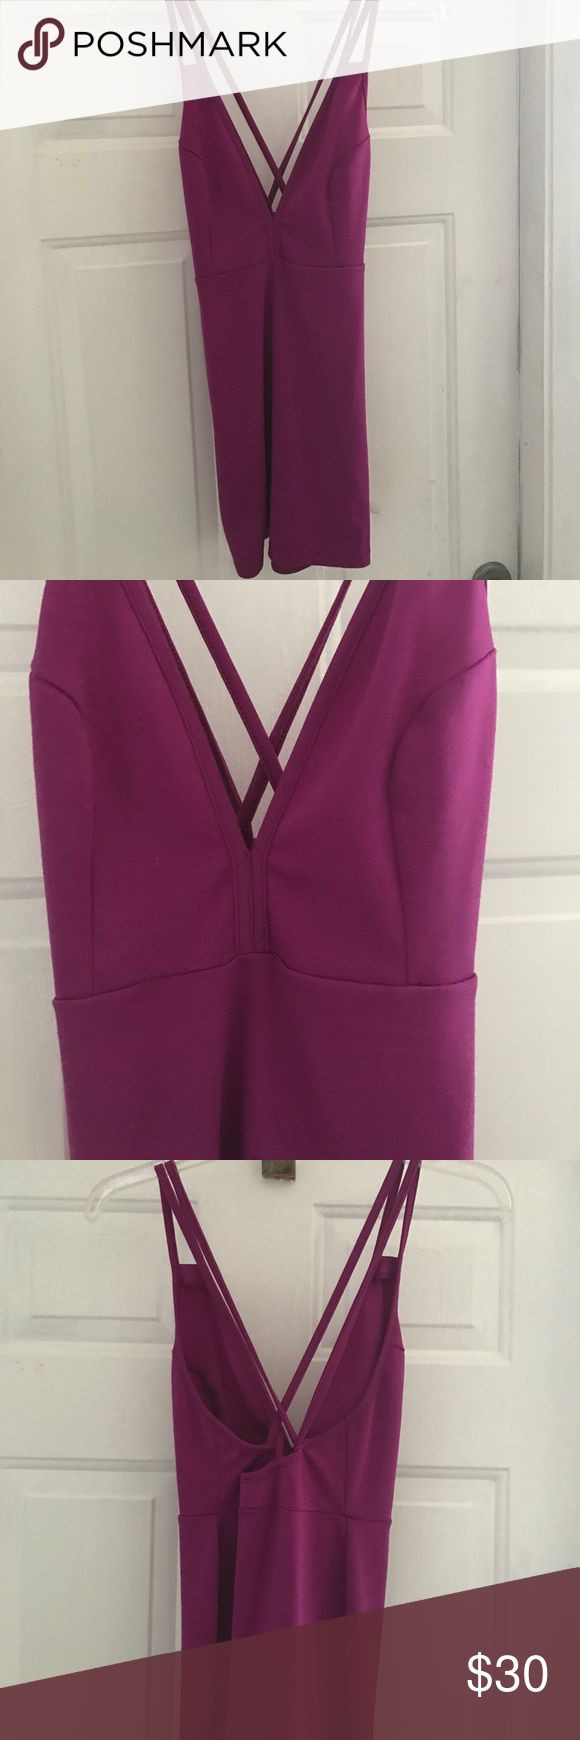 Purple mini dress Purple mini dress. Low cut in the front with crisscrossing in the back Nasty Gal Dresses Mini